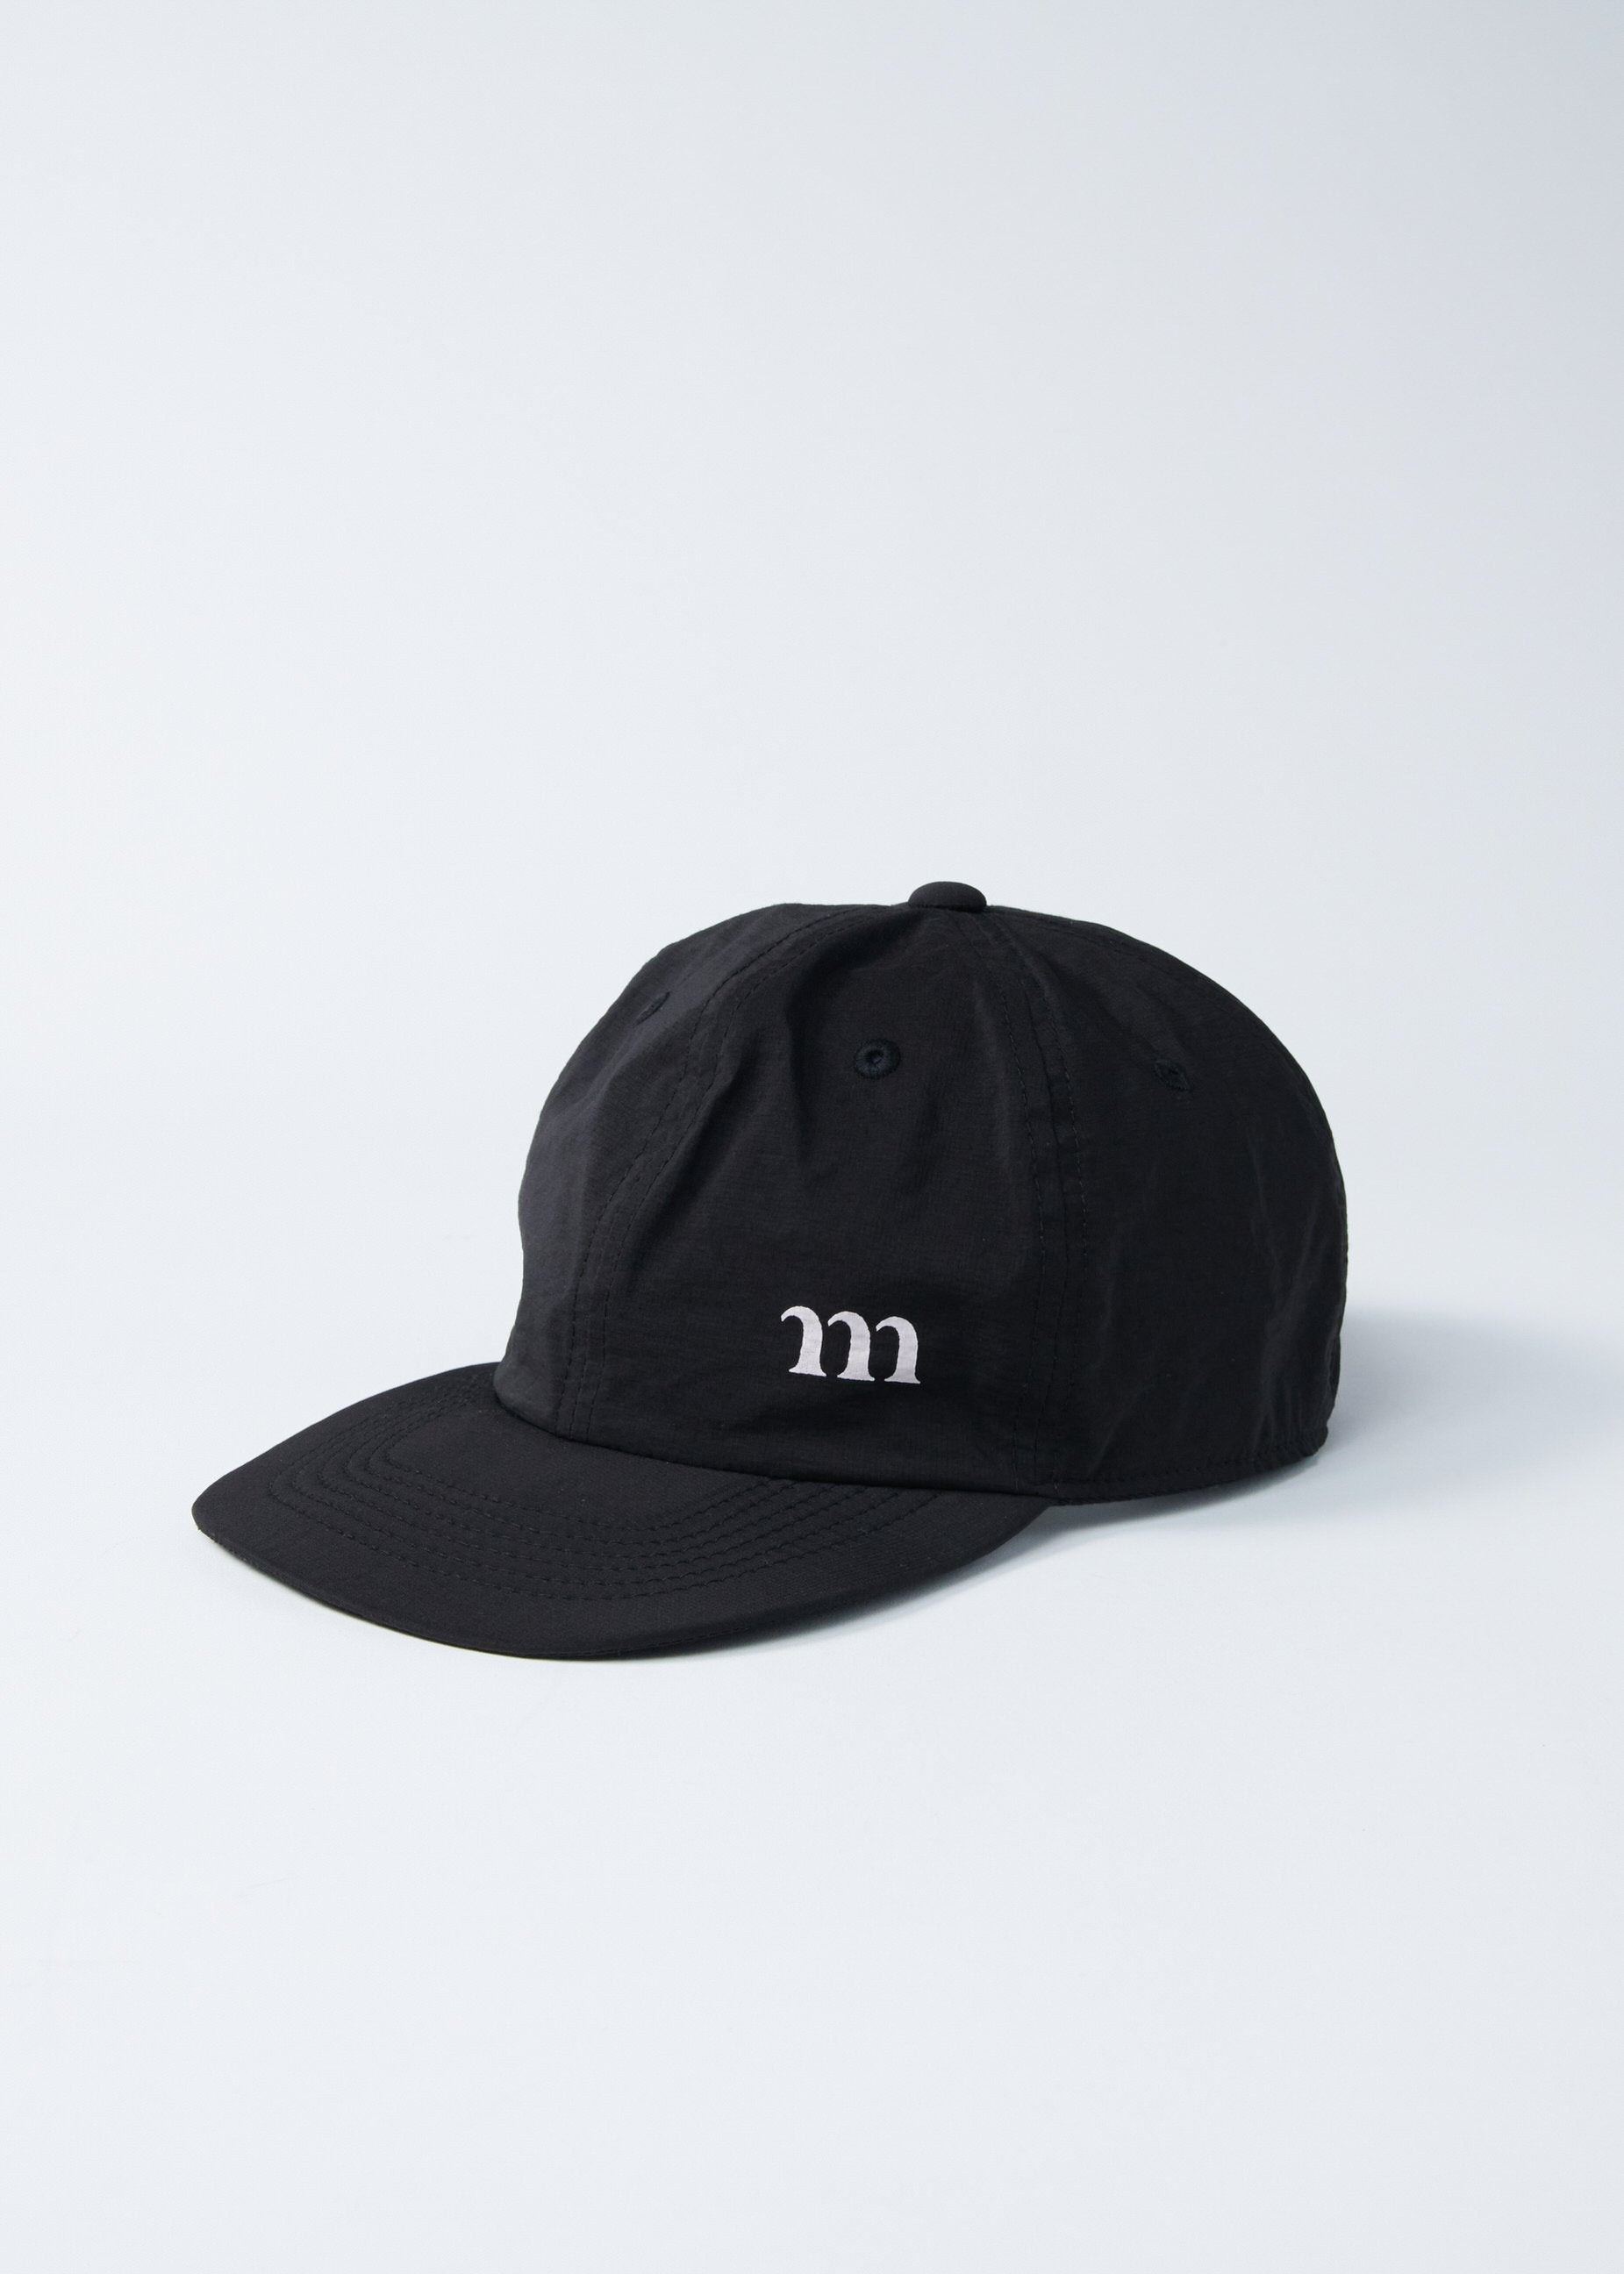 """m"" LIGHT CAP <span>【予約販売】</span> - muracodesigns"